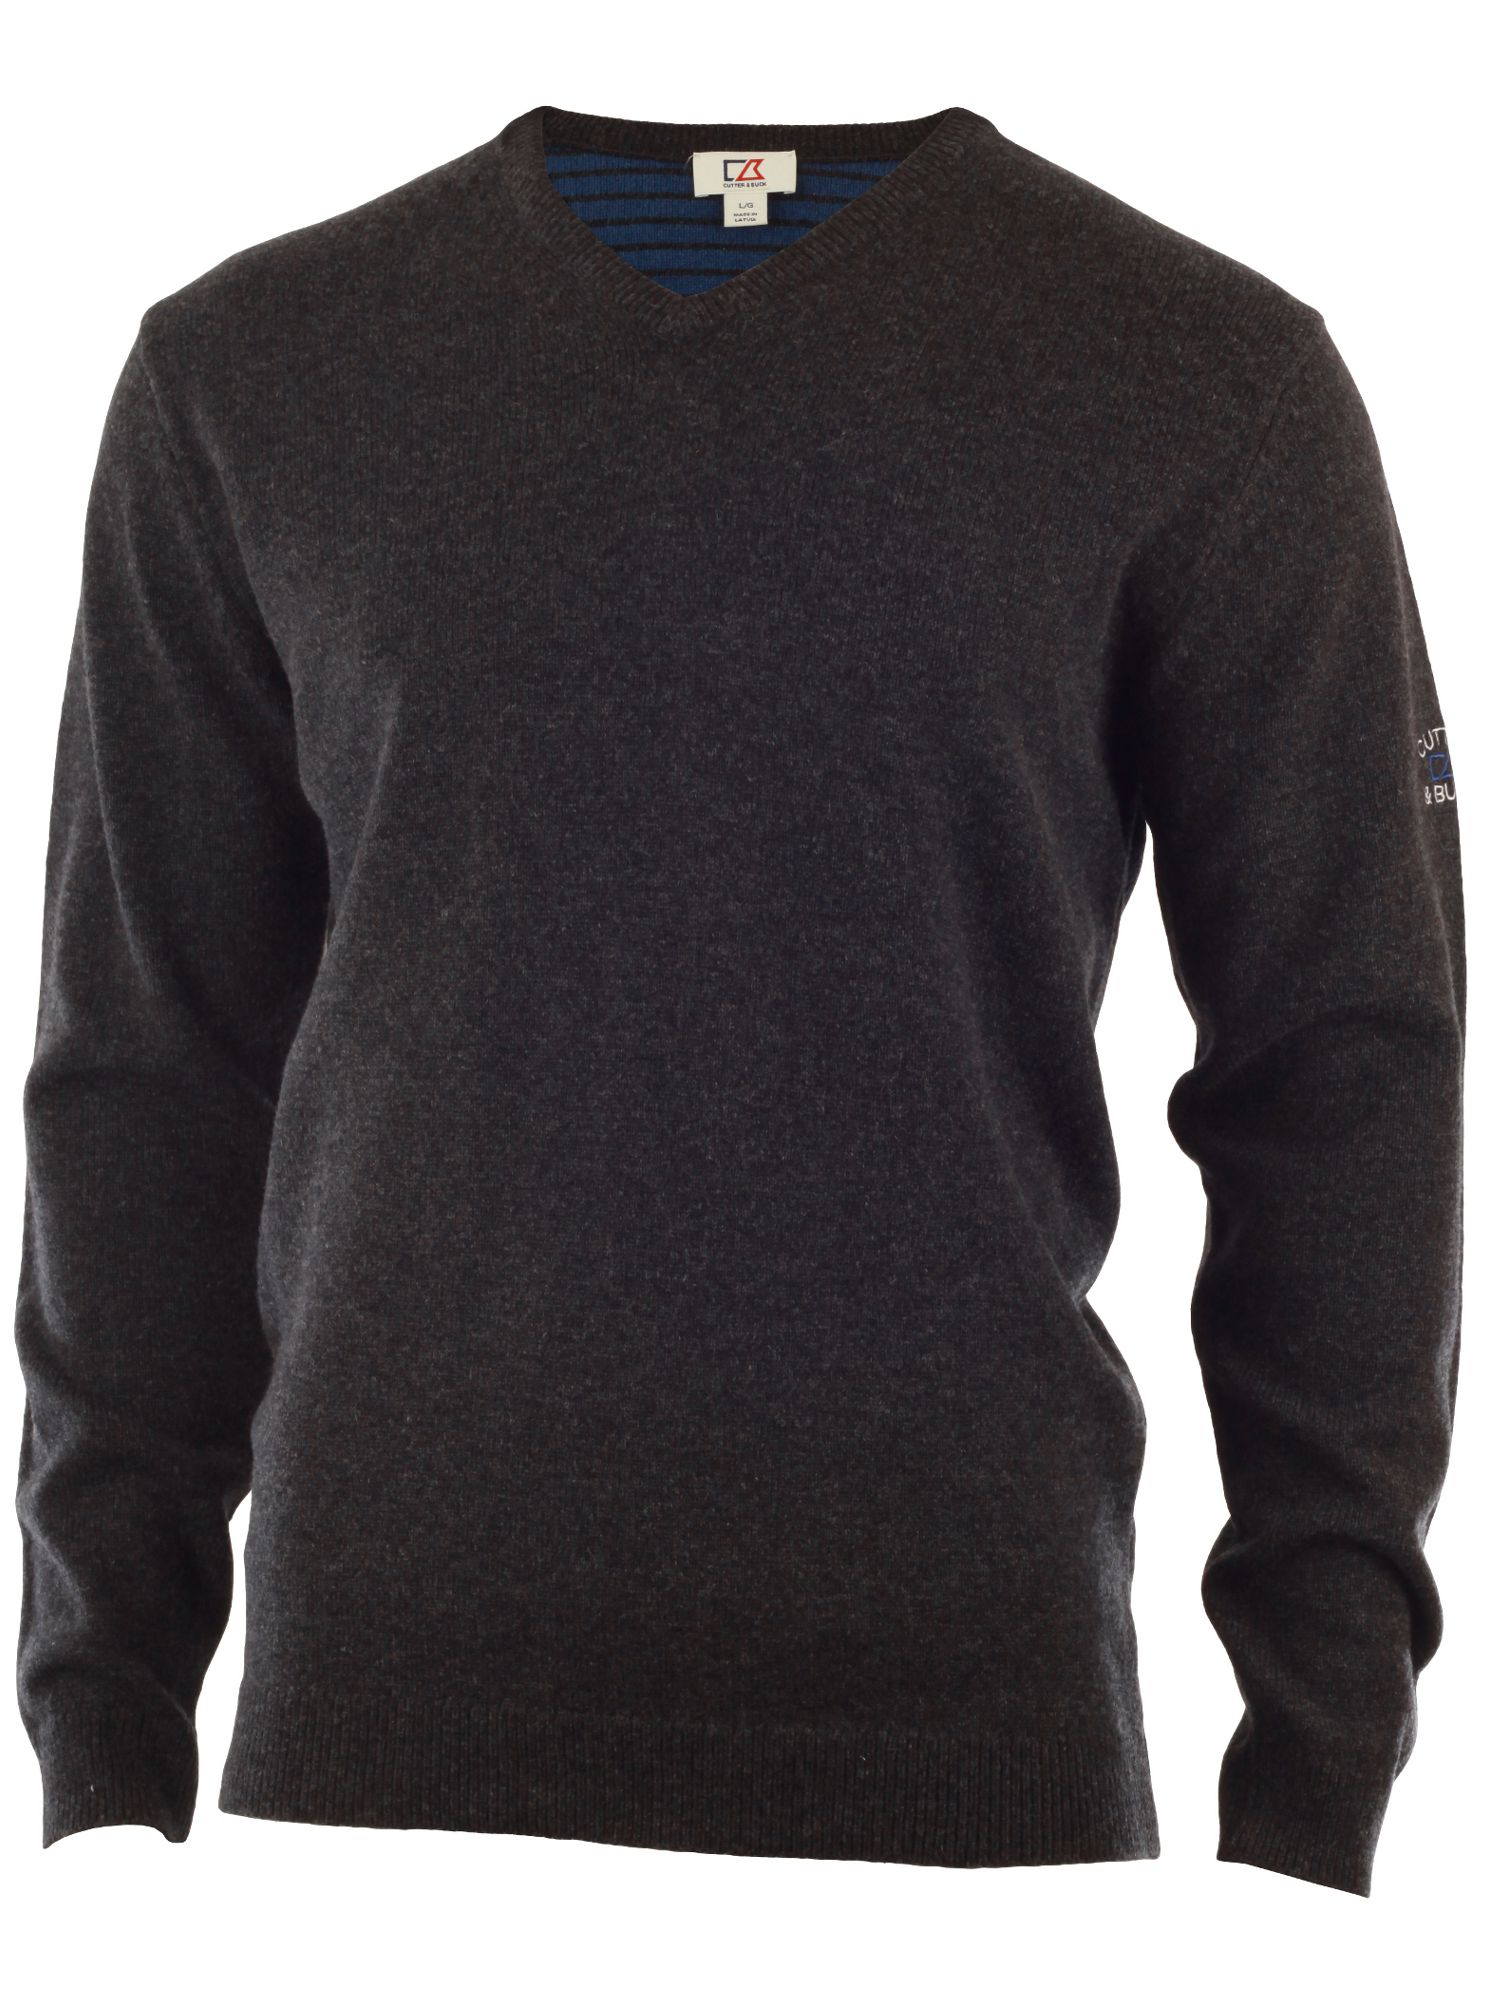 Cutter and Buck Men's Cutter and Buck Lambswool v neck sweater, Charcoal